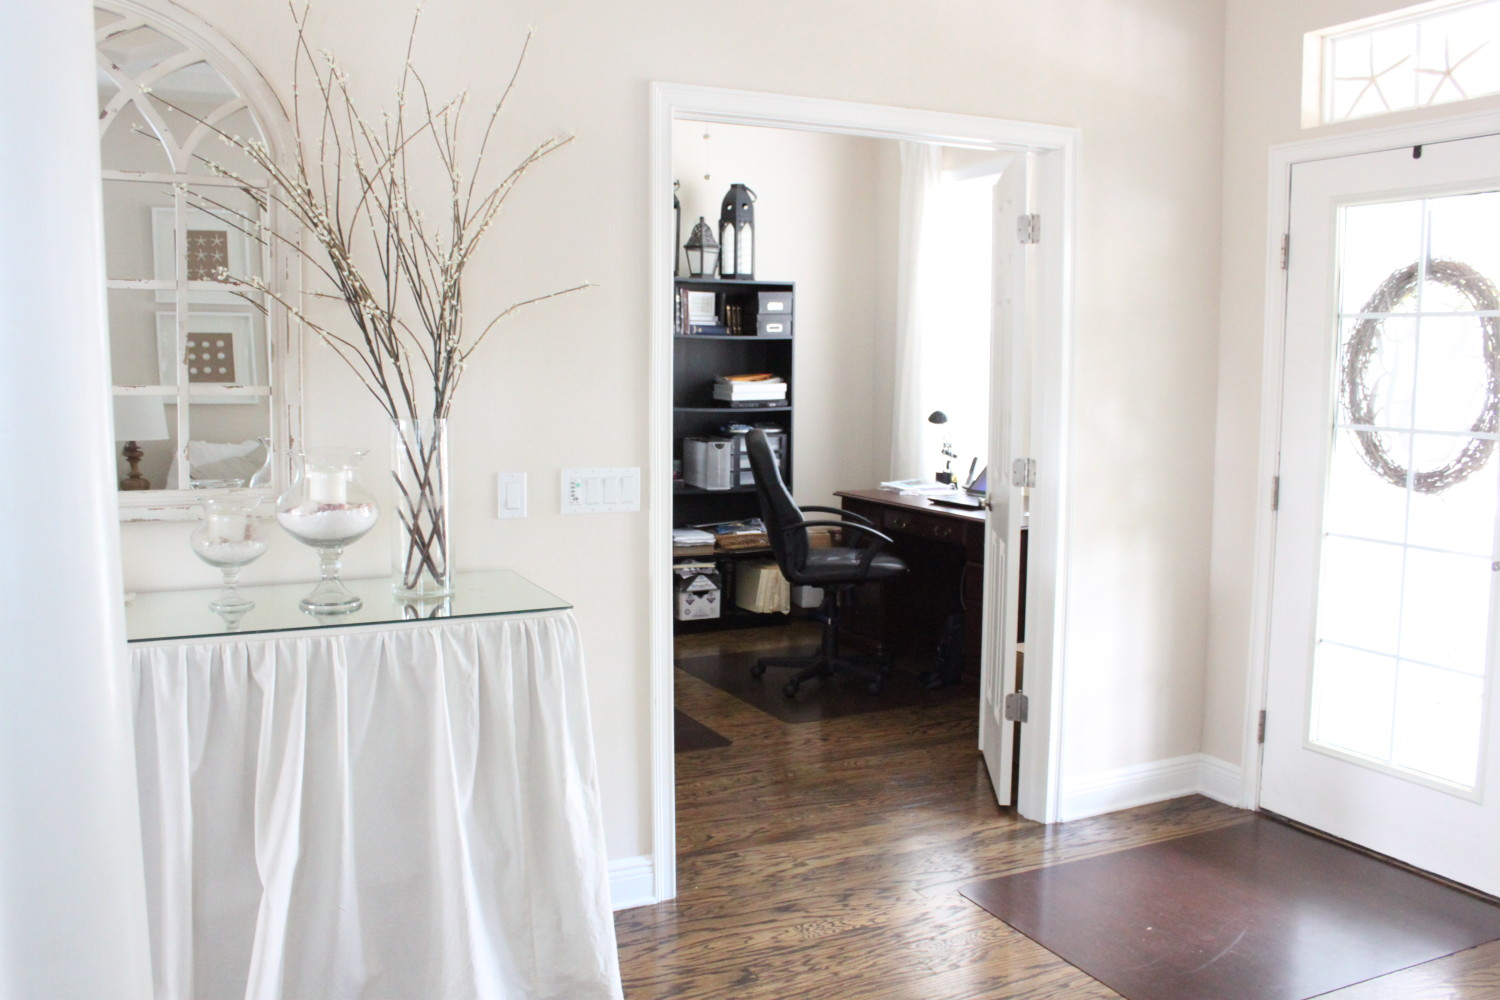 Makeover Monday: A New Home Office - Starfish Cottage